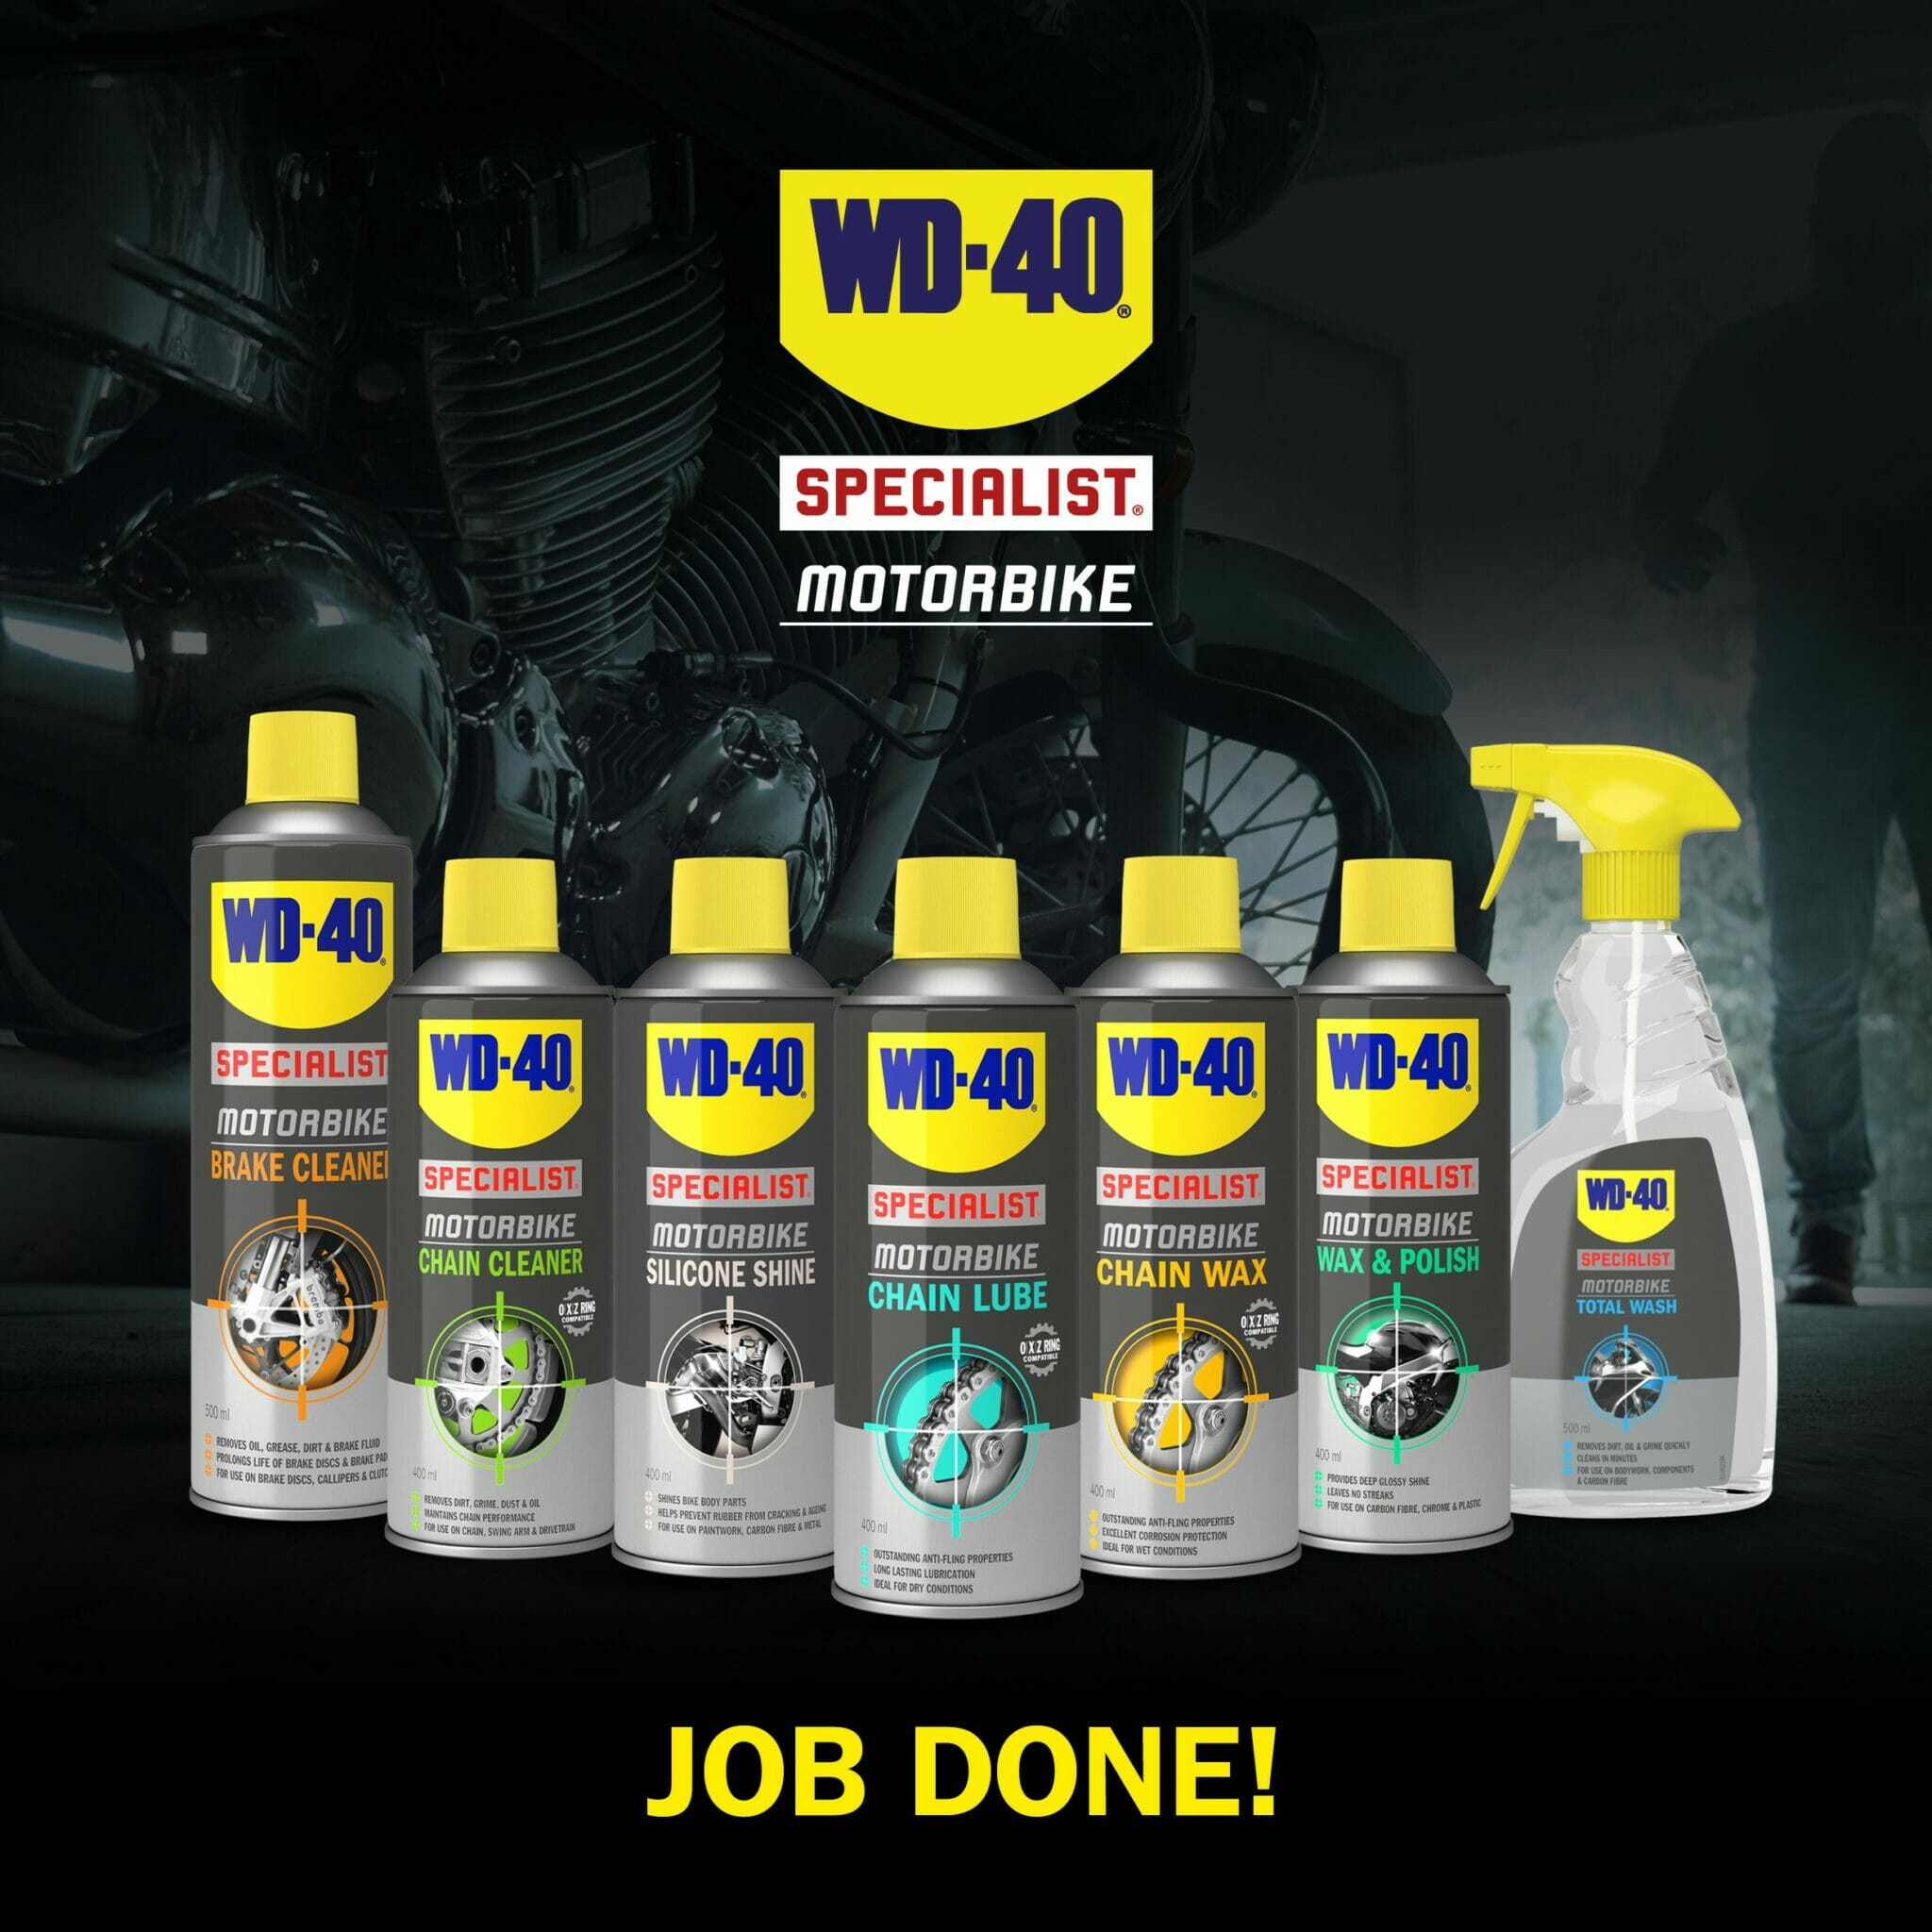 wd40 motorbike wax and polish how to use part 8